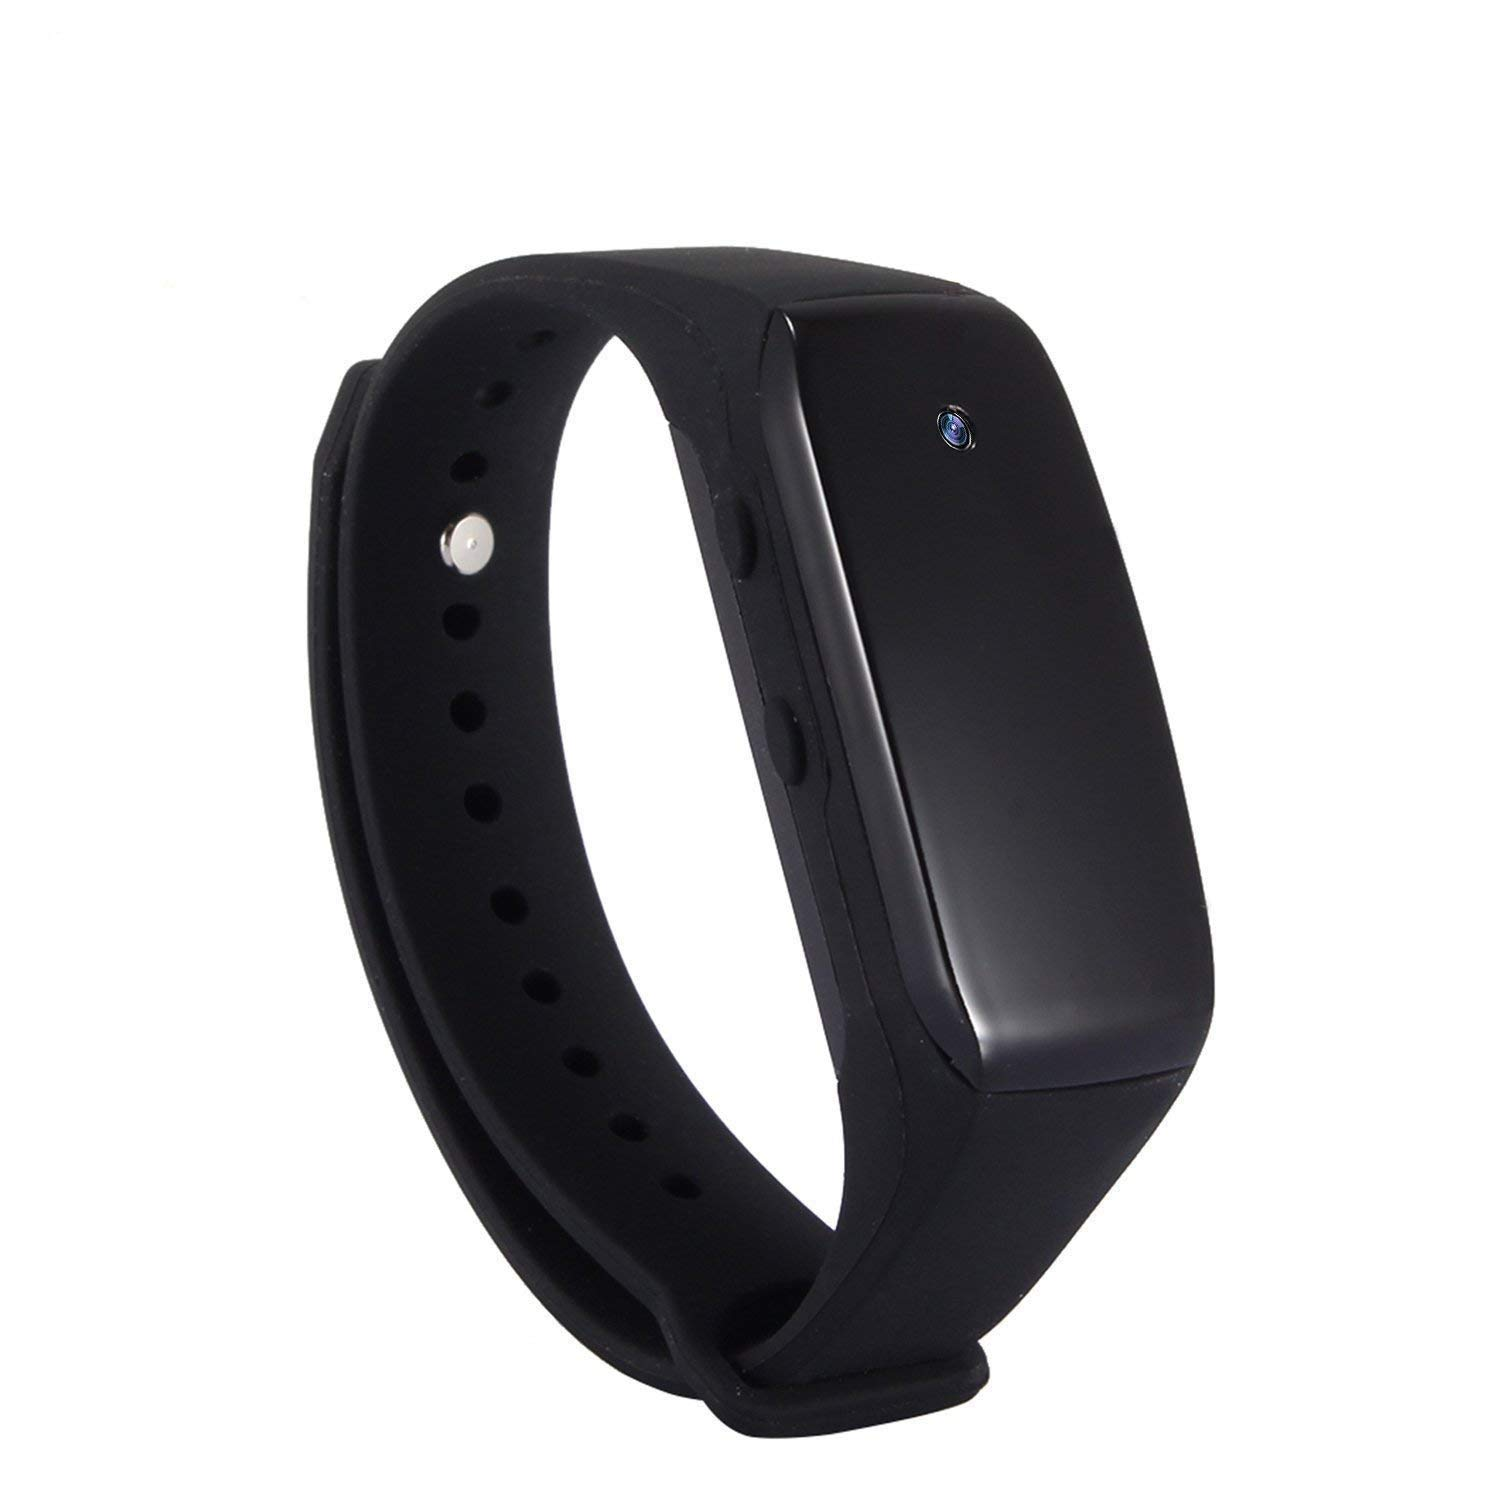 eoqo 1080P Full HD Buckle Bracelet Spy Camera - Support Video Recording with Adjustable Wristband + 8GB Micro SD Card